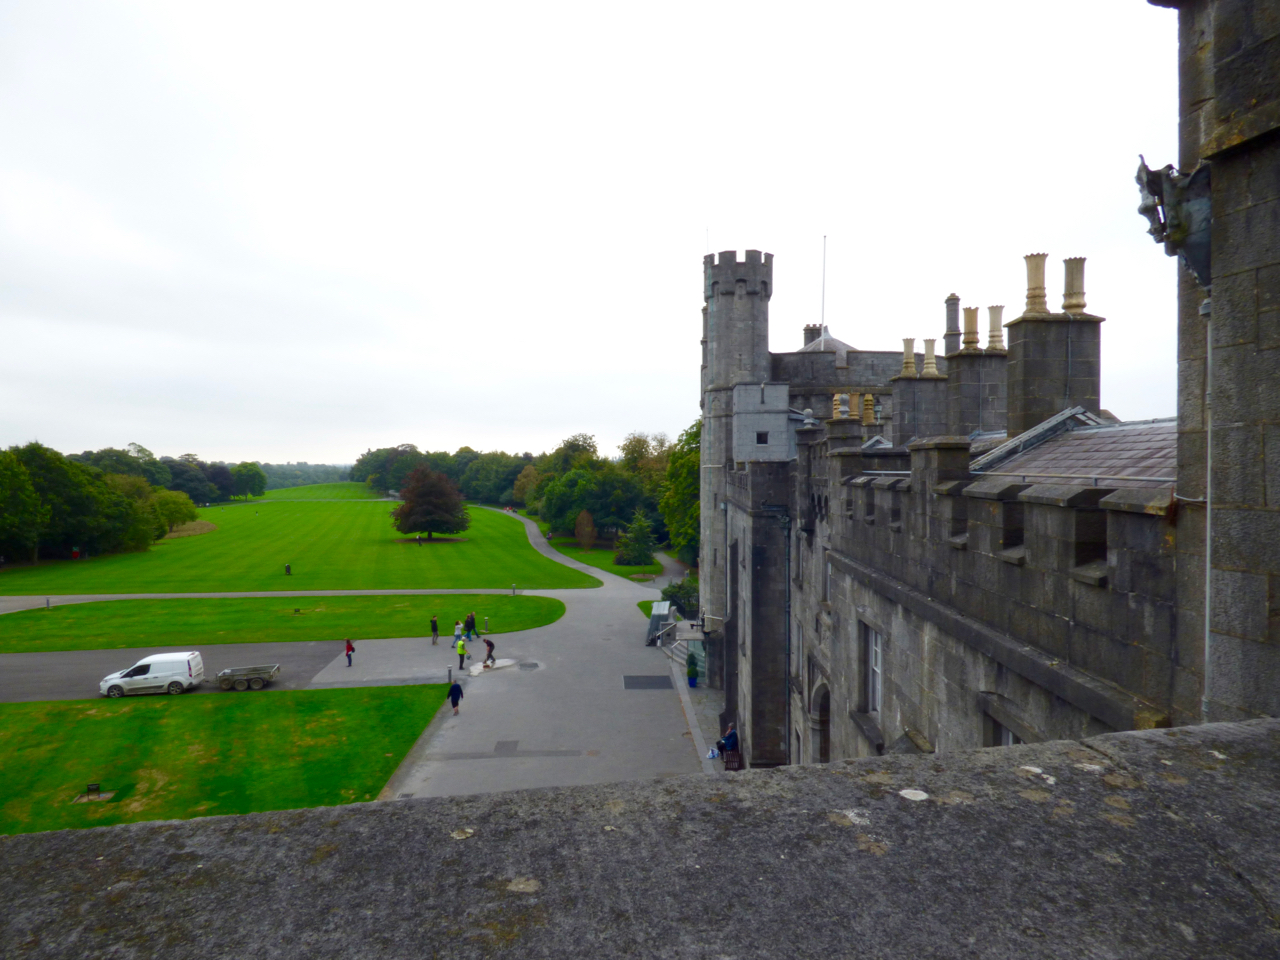 Kilkenny Castle Ireland looking out over lawn